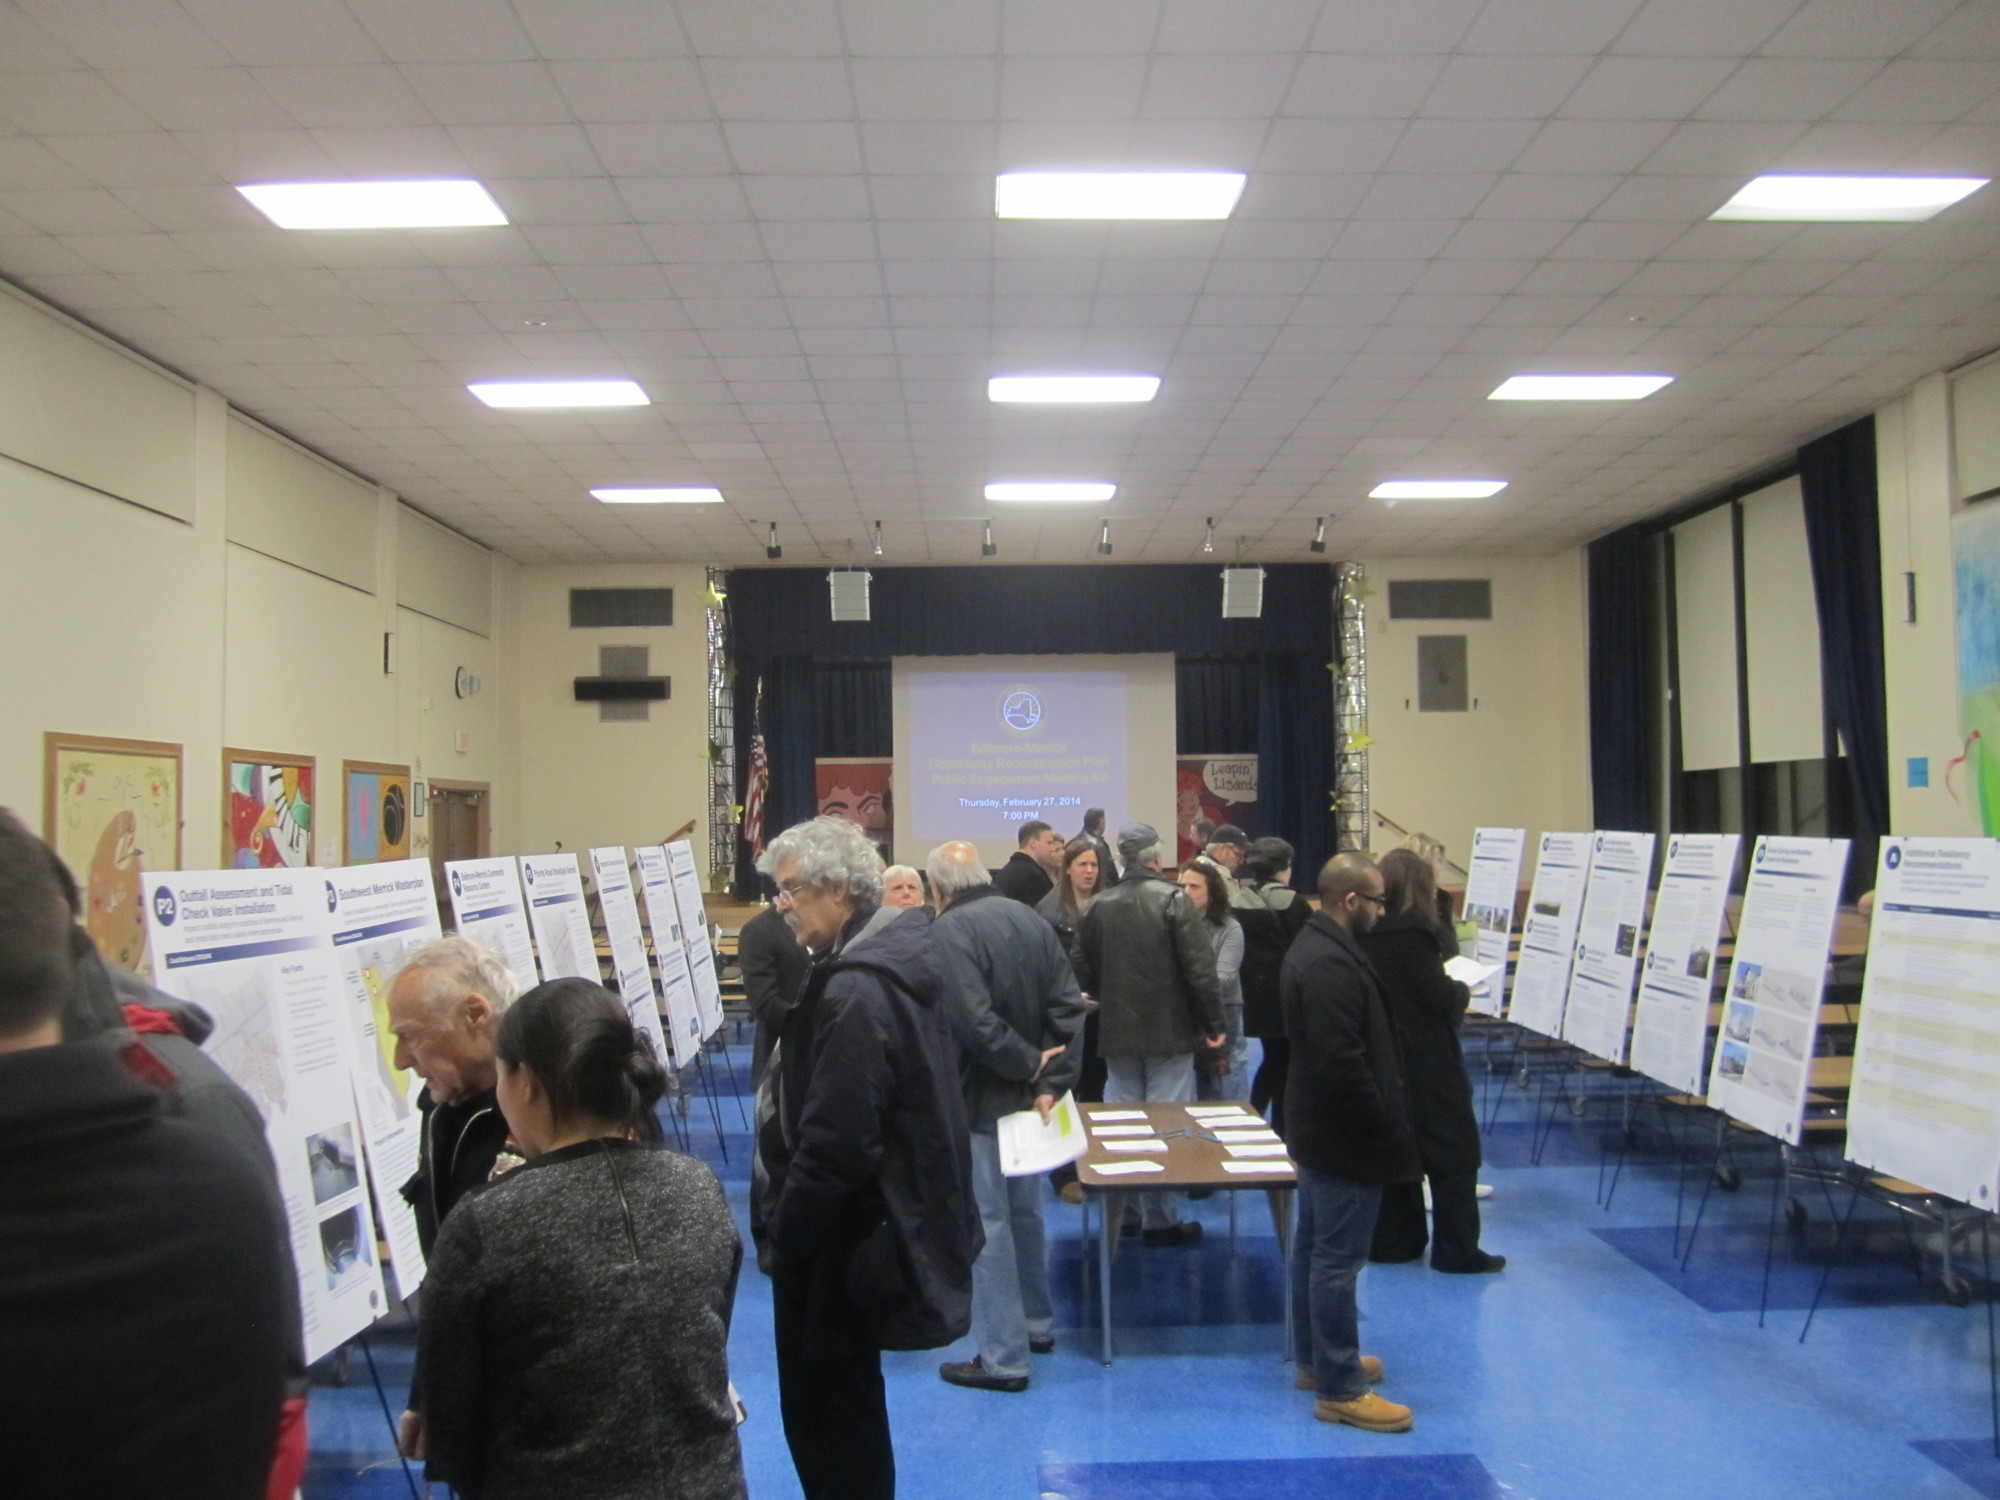 The New York Rising Community Reconstruction Program Bellmore-Merrick Planning Committee held its third public-engagement meeting on Feb. 27 at Levy-Lakeside Elementary School in Merrick. Poster boards set up on easels described several of the projects under consideration.